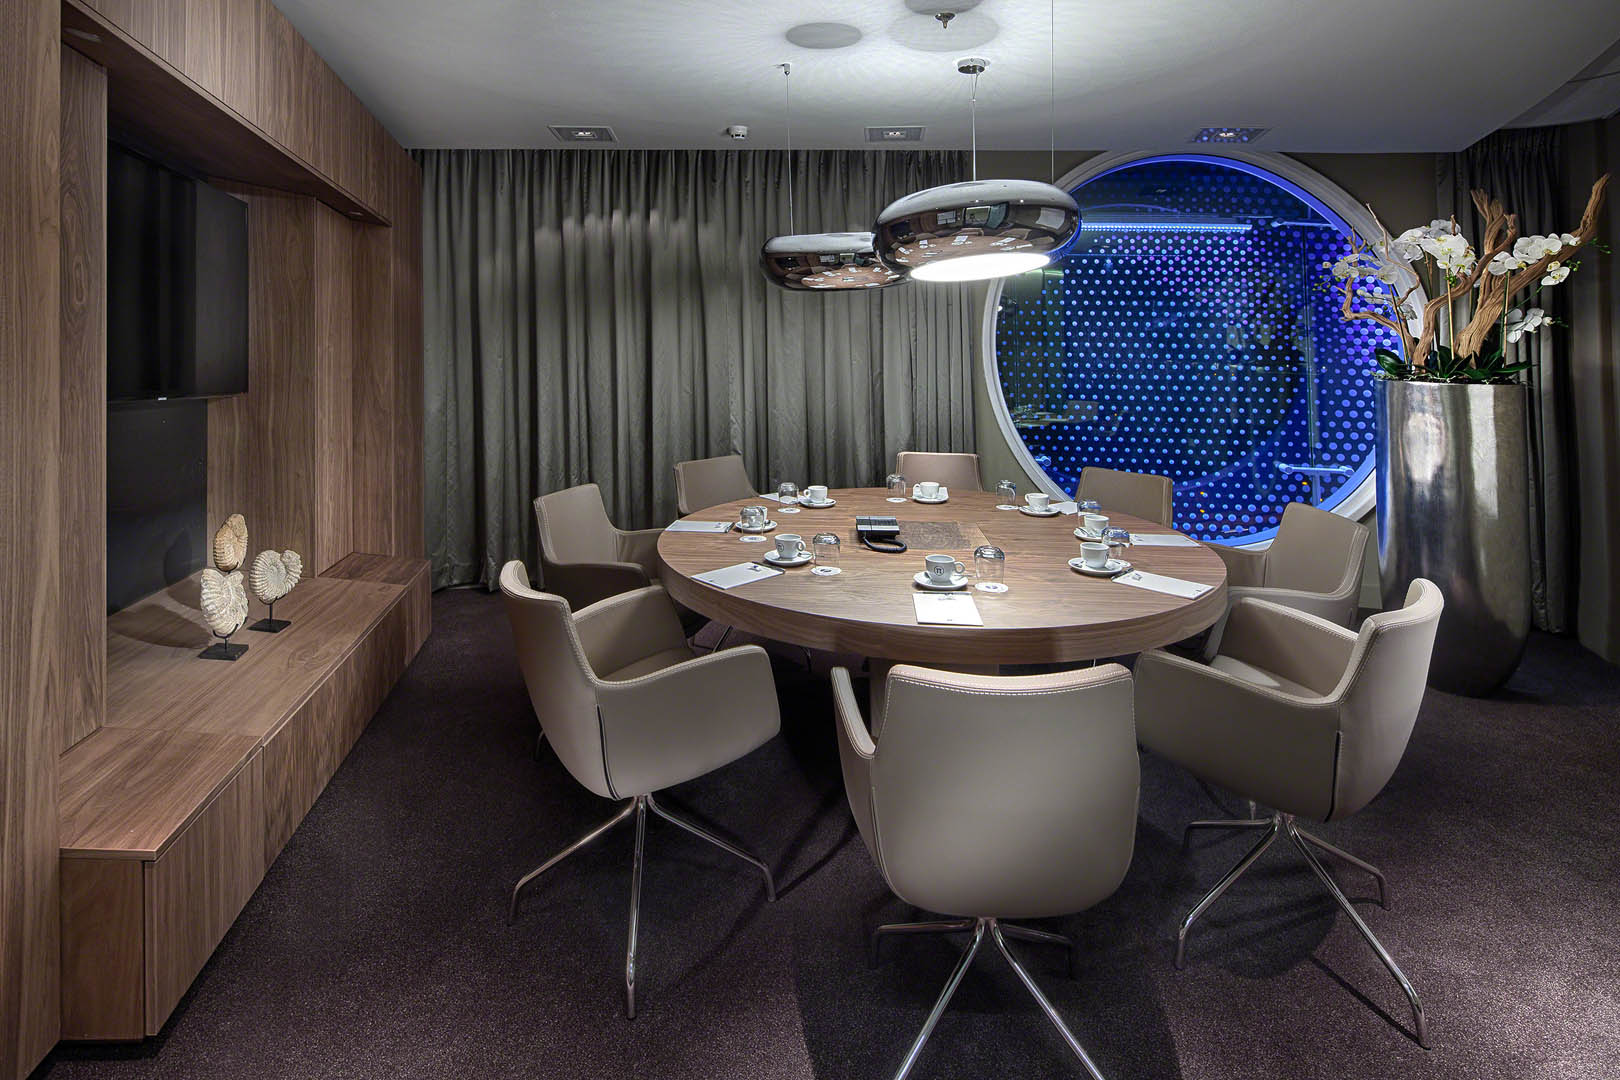 The boardroom design is based on the space's dual function as both a private dining area and a meeting room.